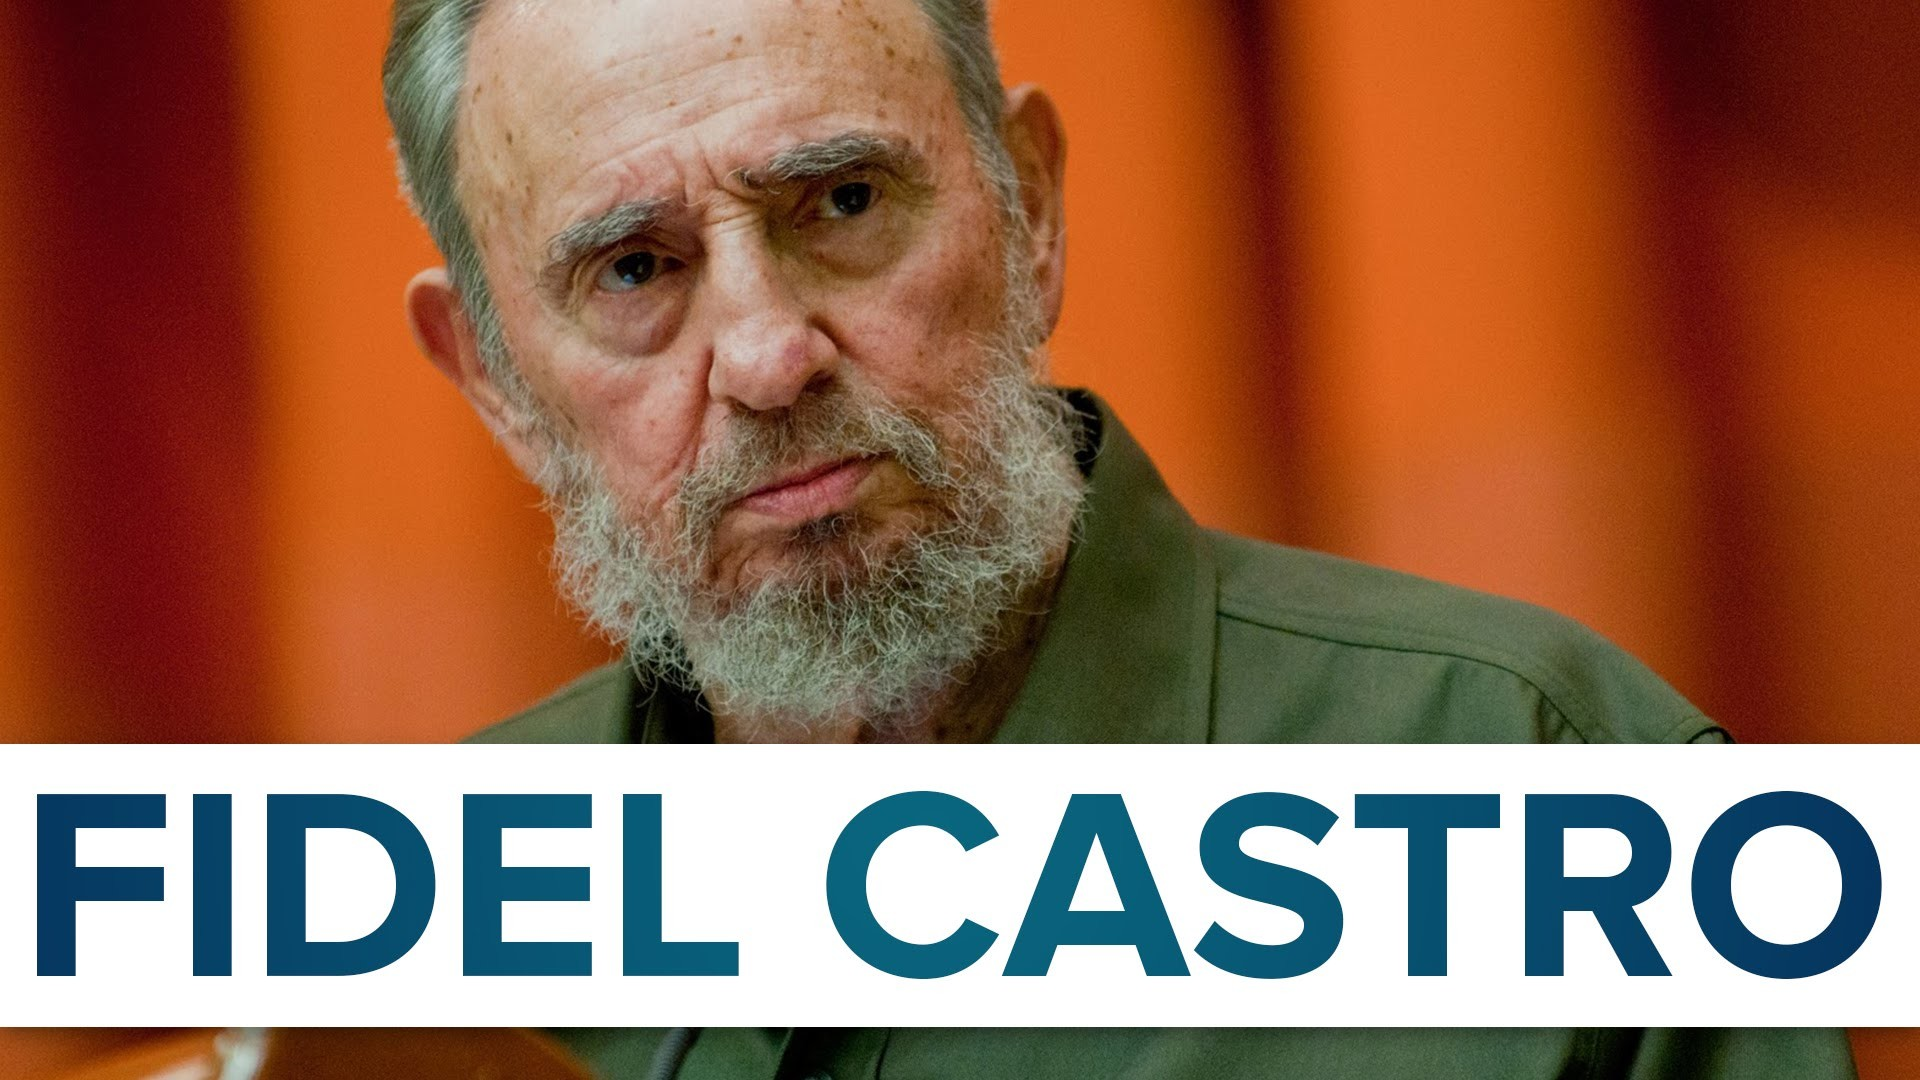 fidel castro s role cuban revolution evaluation castro s r The cuban revolution was an armed revolt that led to the overthrow of dictator fulgencio batista of cuba on january 1, 1959 by the 26th of july movement led by fidel castro.